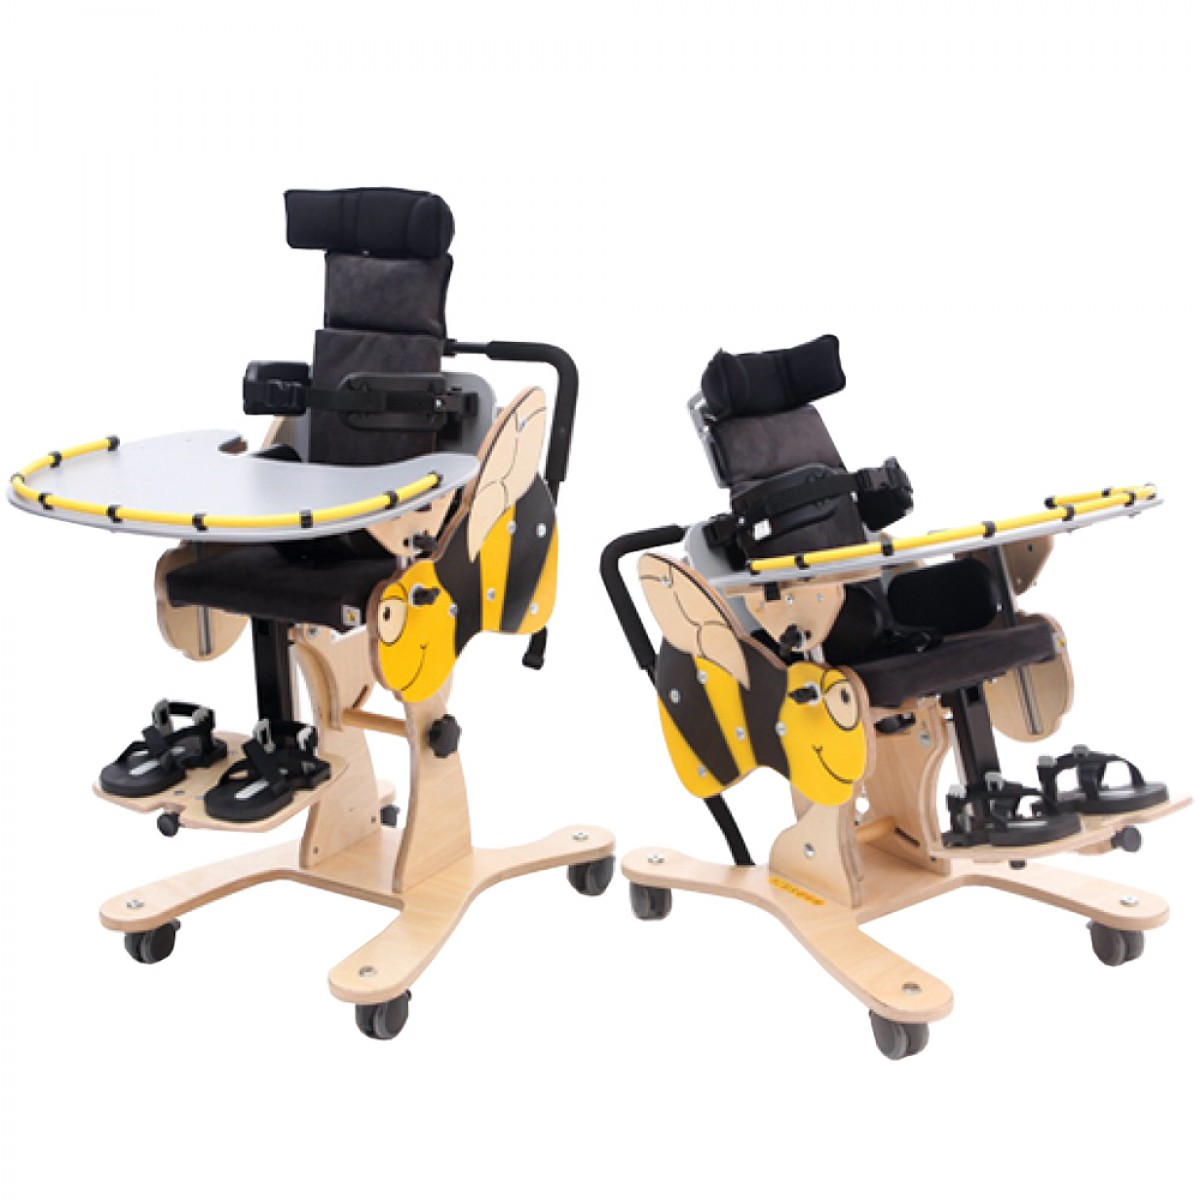 rifton activity chair glass table and chairs seating systems paediatric equipment for children with